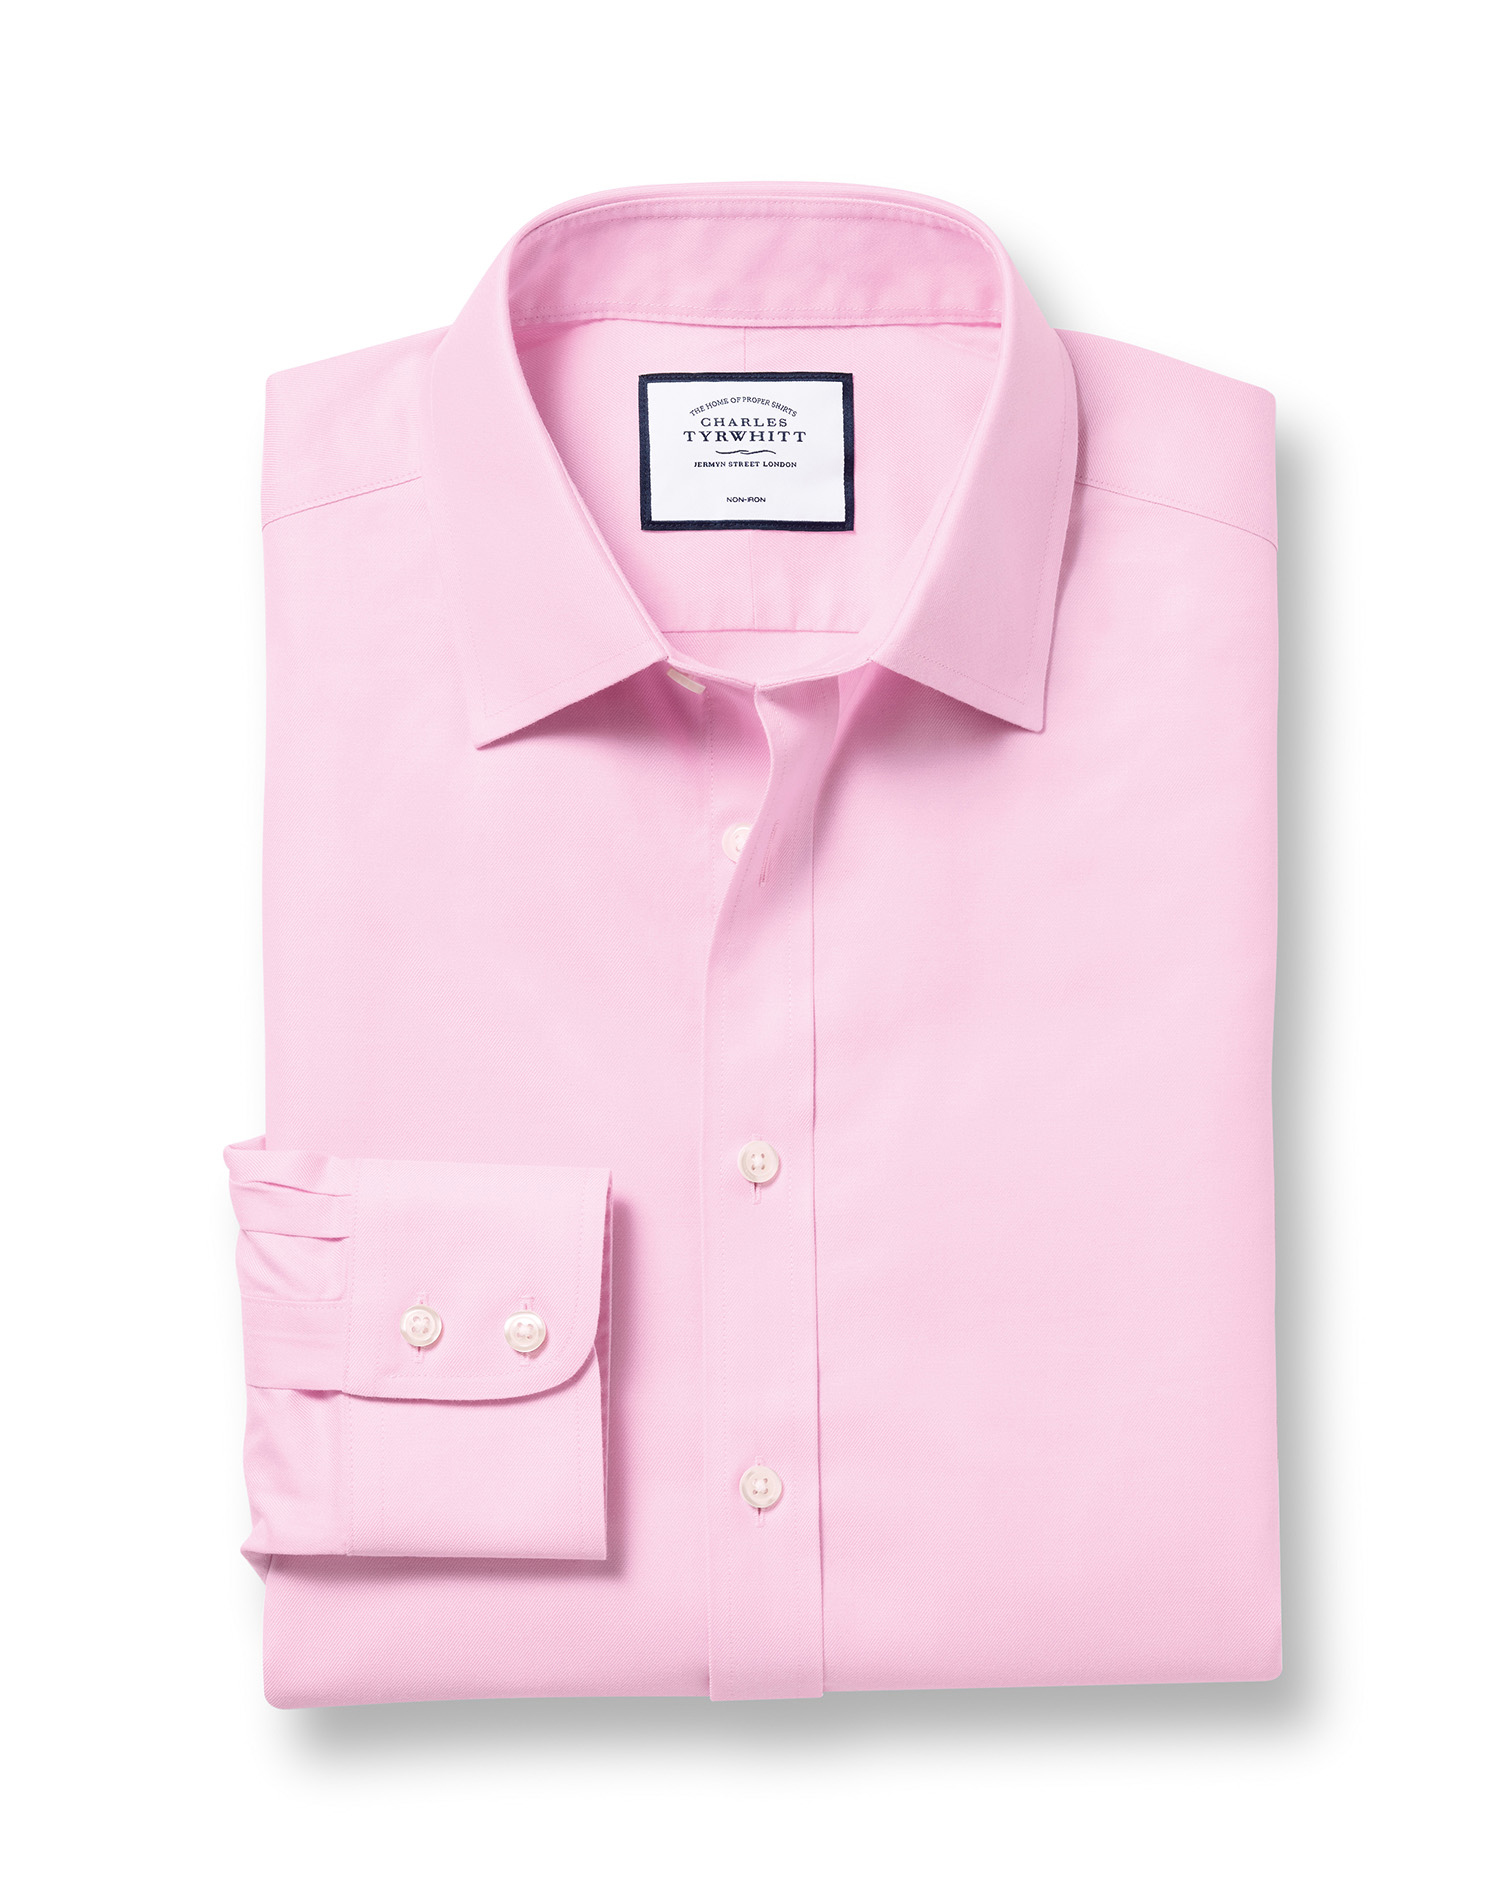 Slim Fit Non-Iron Twill Pink Cotton Formal Shirt Single Cuff Size 17.5/36 by Charles Tyrwhitt